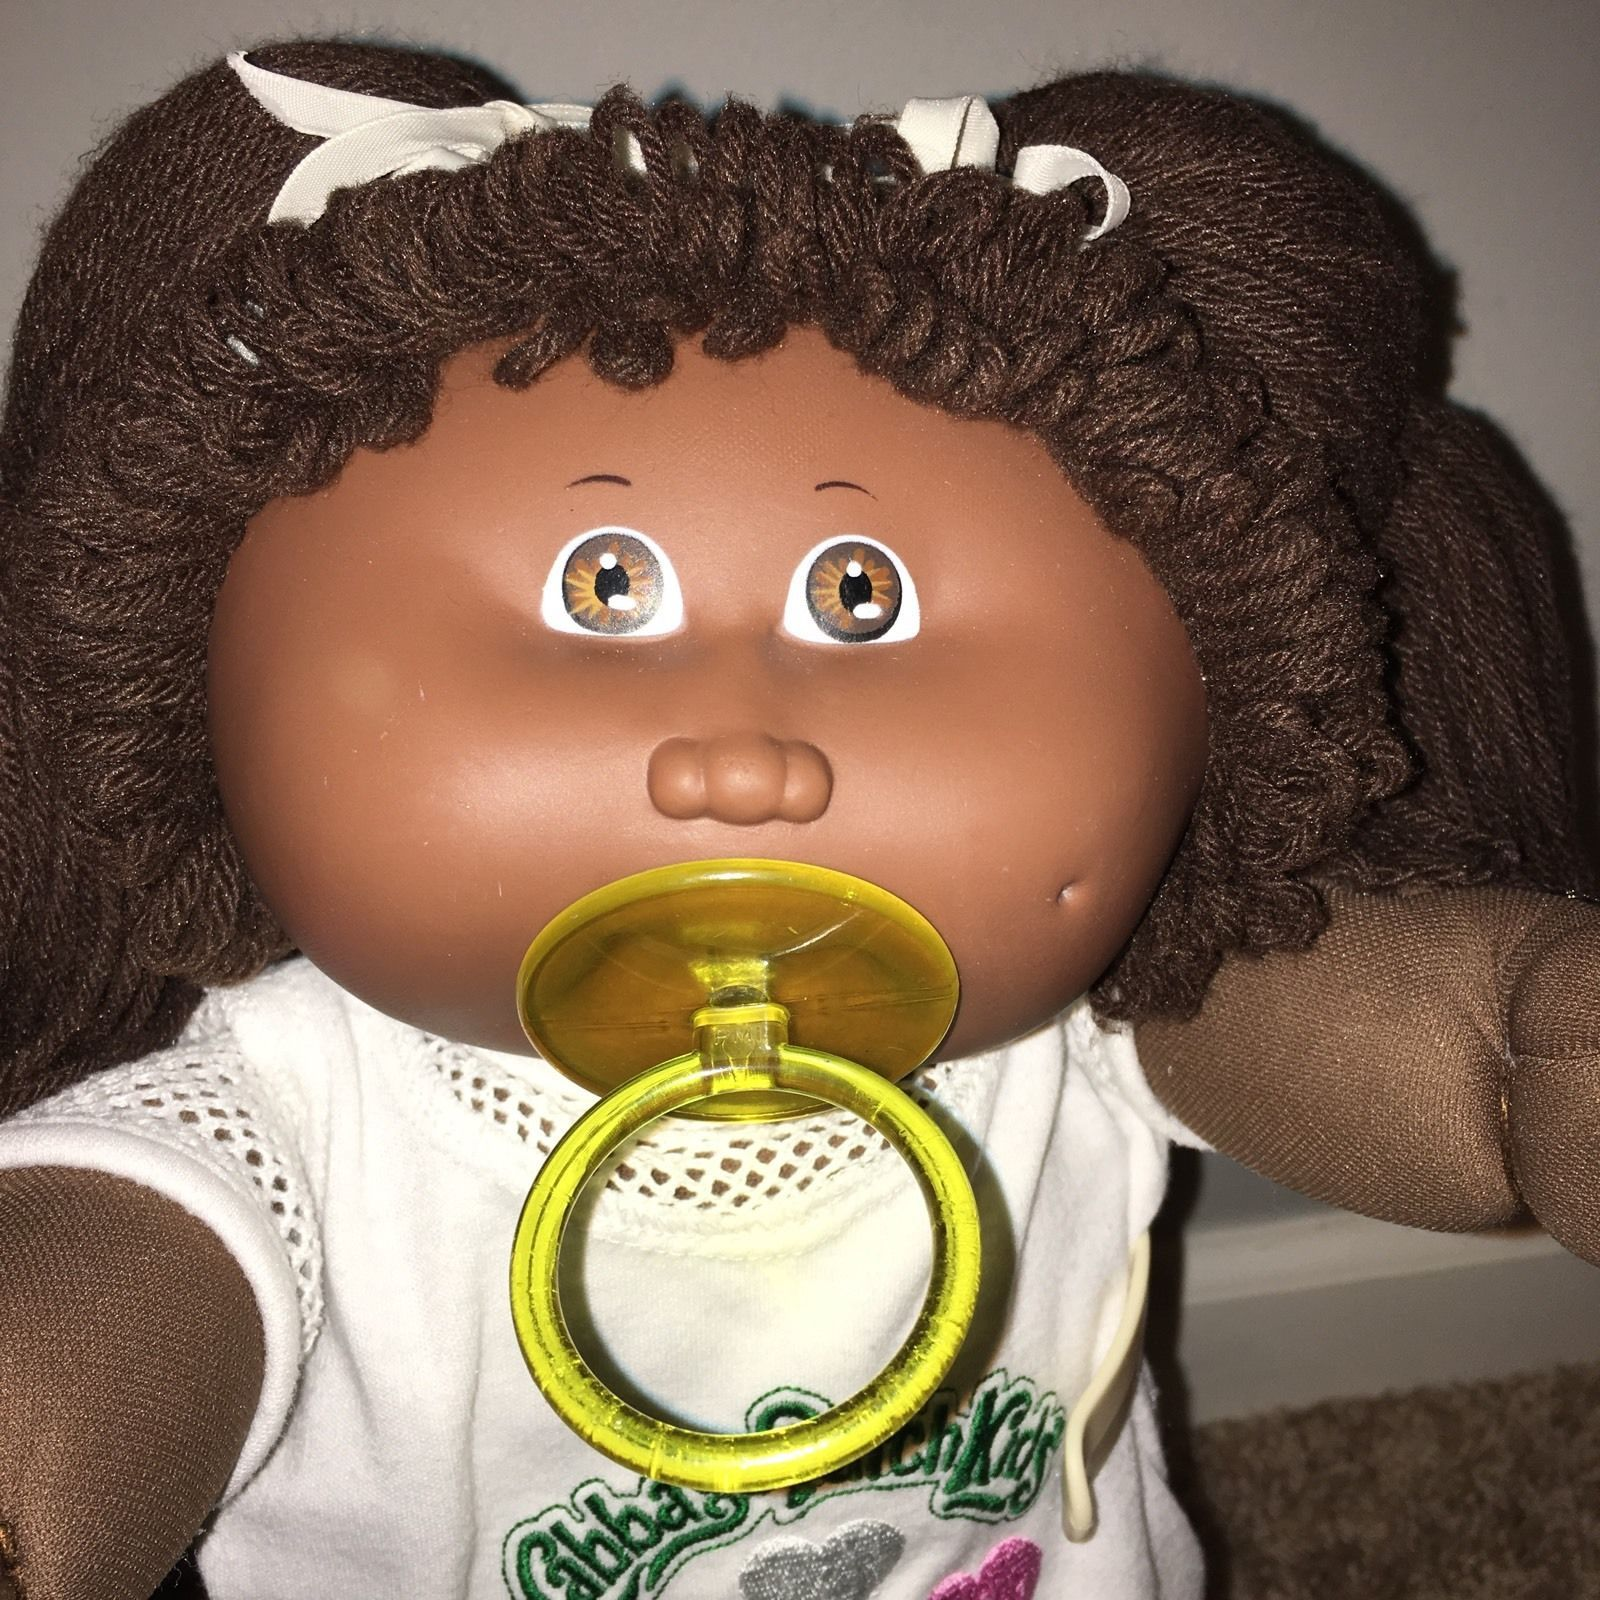 Vintage Cabbage Patch Kids African American Aa Hm6 Pacifier Girl In Htf Outfit Pacifier Girl Cabbage Patch Cabbage Patch Kids